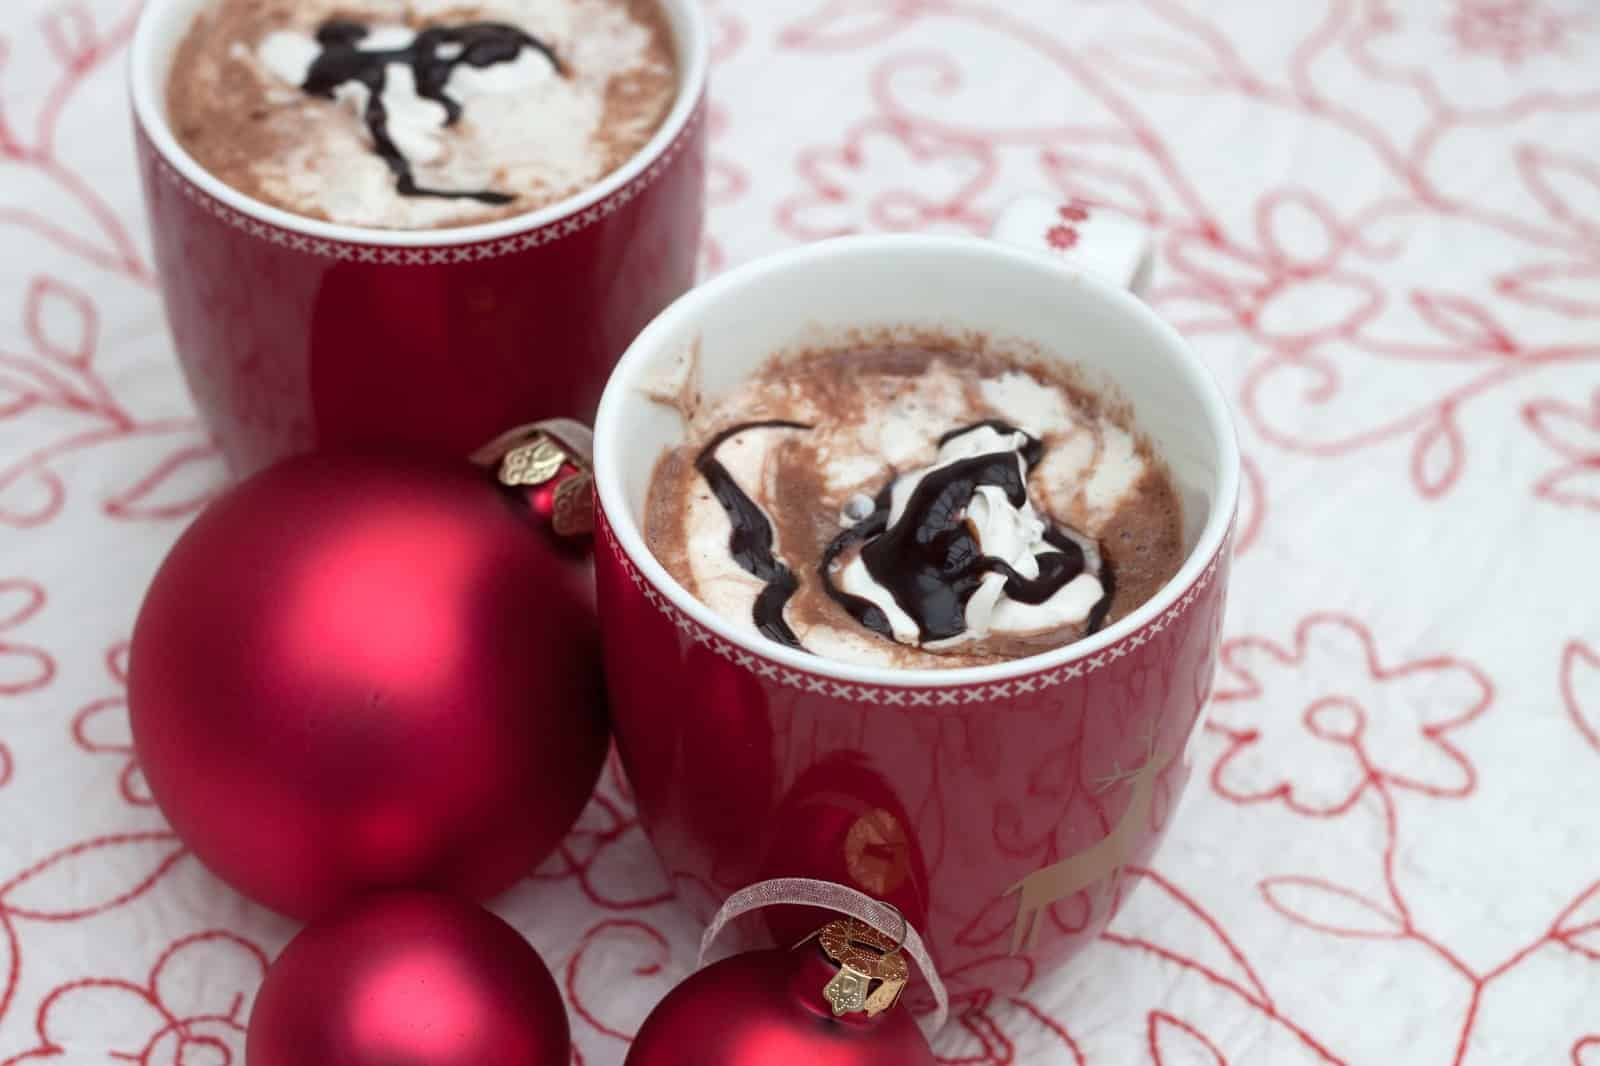 Creamy hot chocolate with whipped cream and chocolate